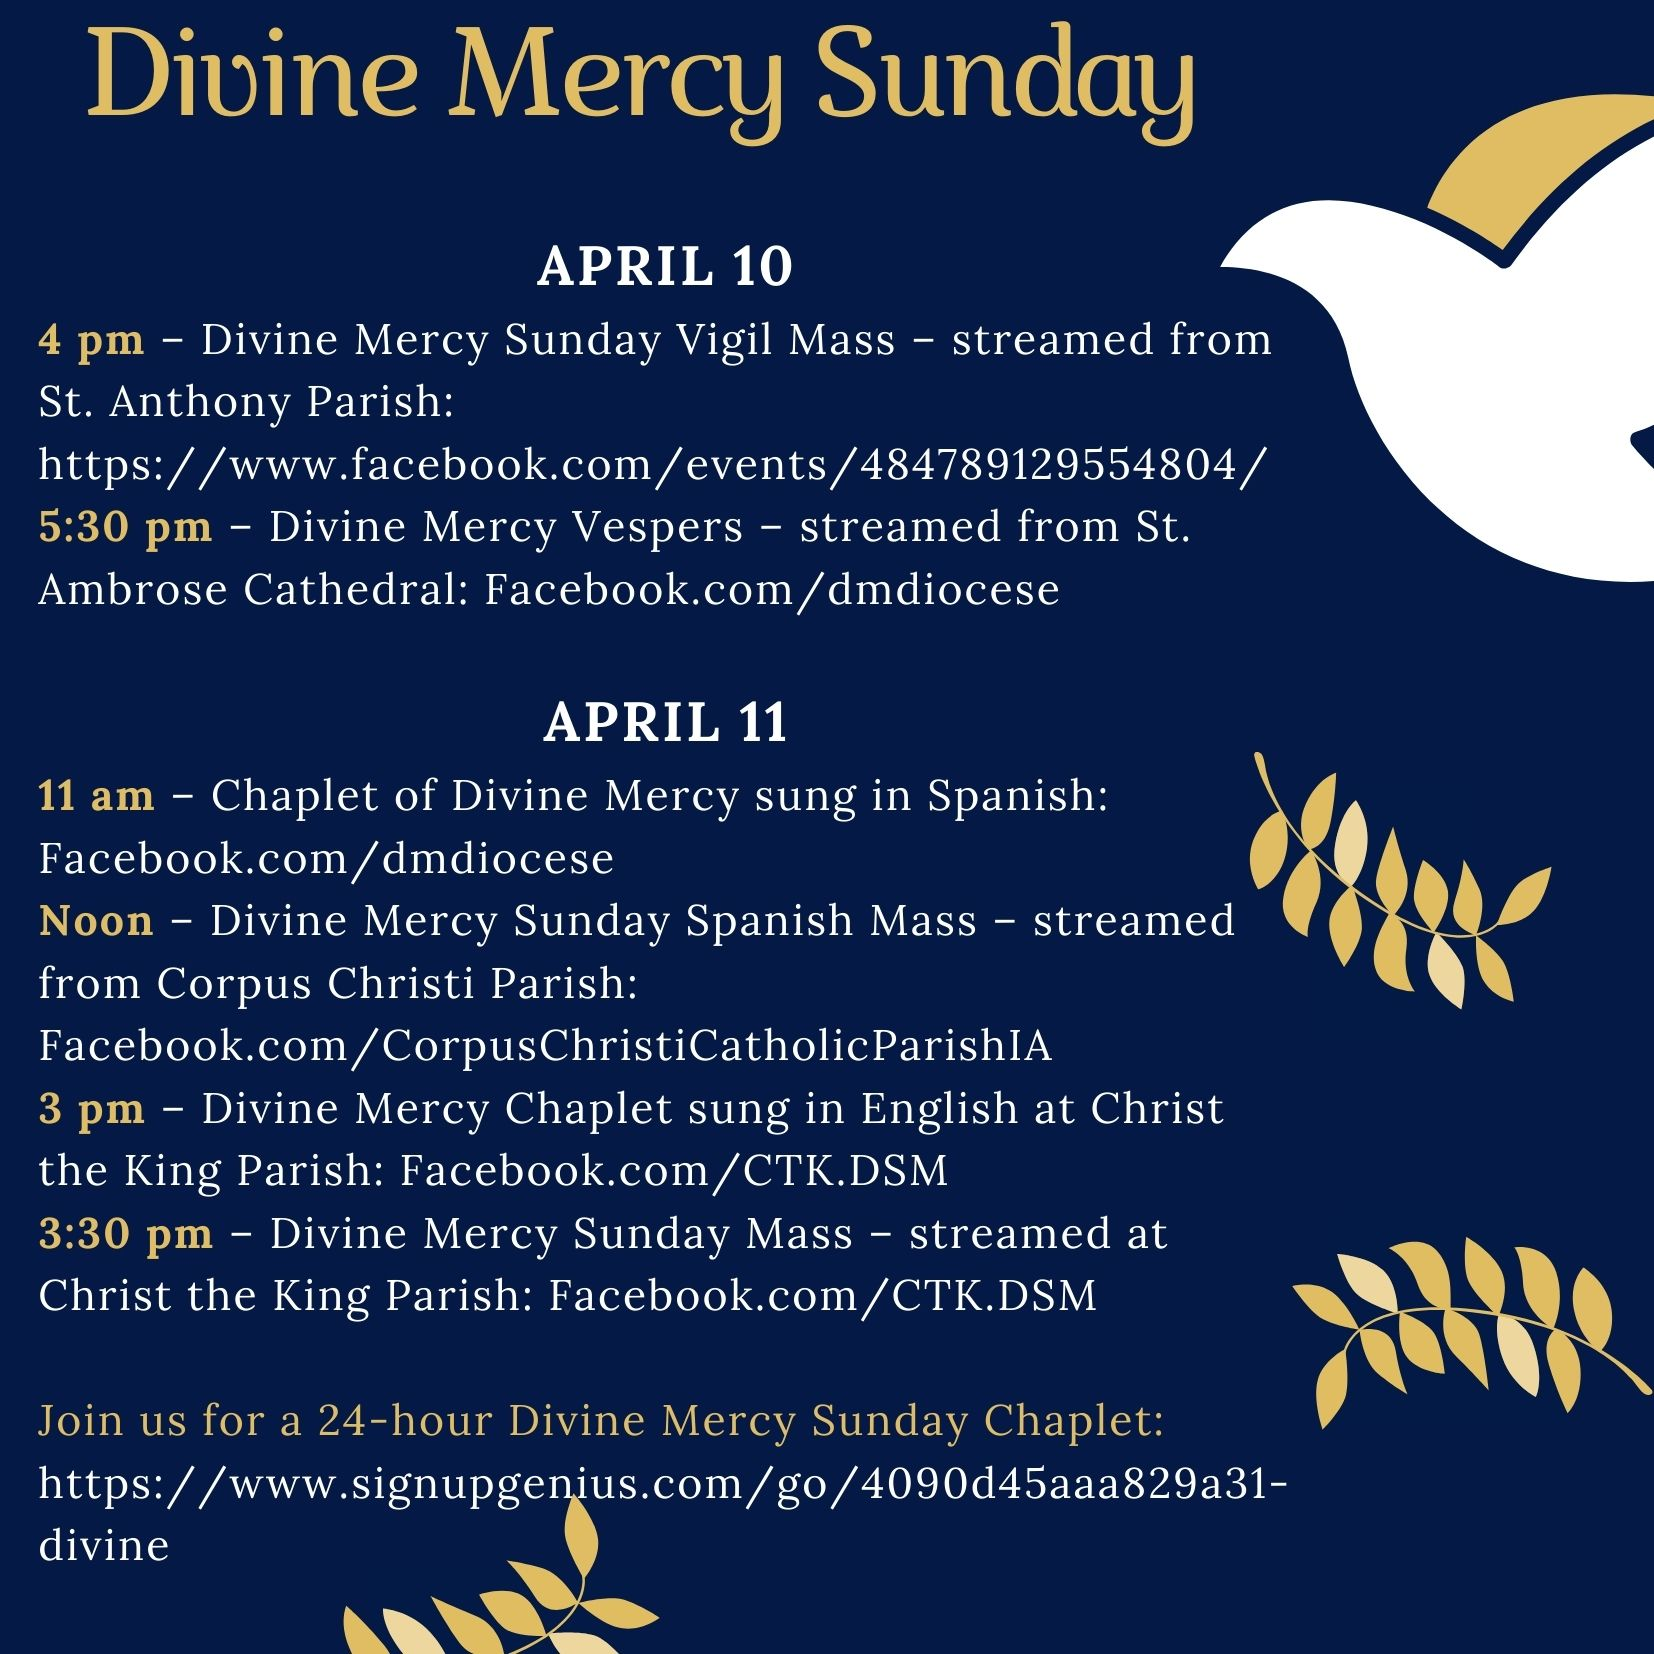 Schedule for Divine Mercy Sunday events